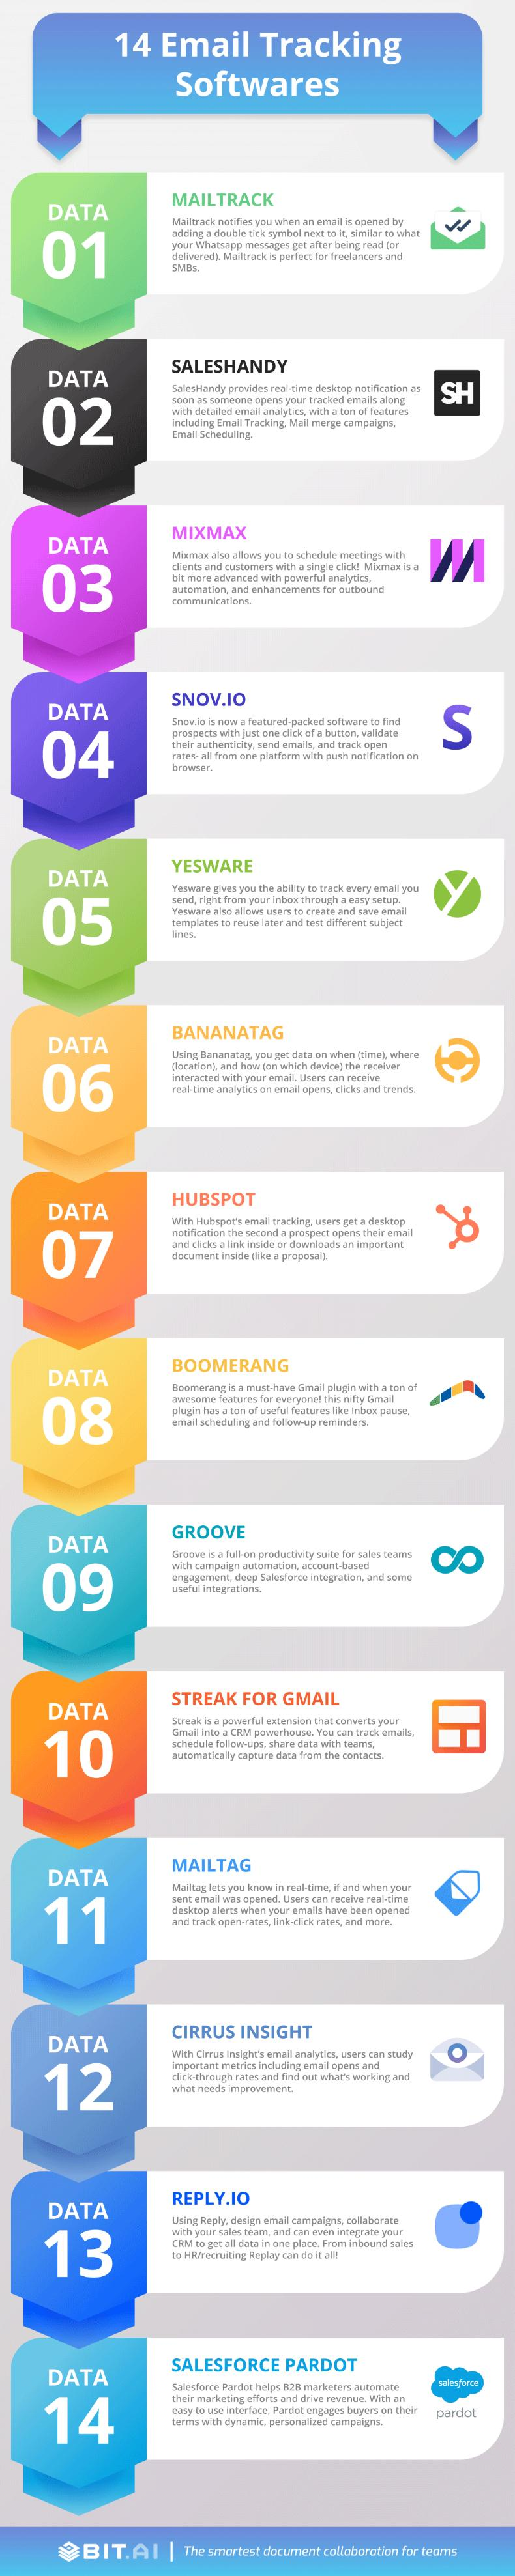 Infographic of email tracking software